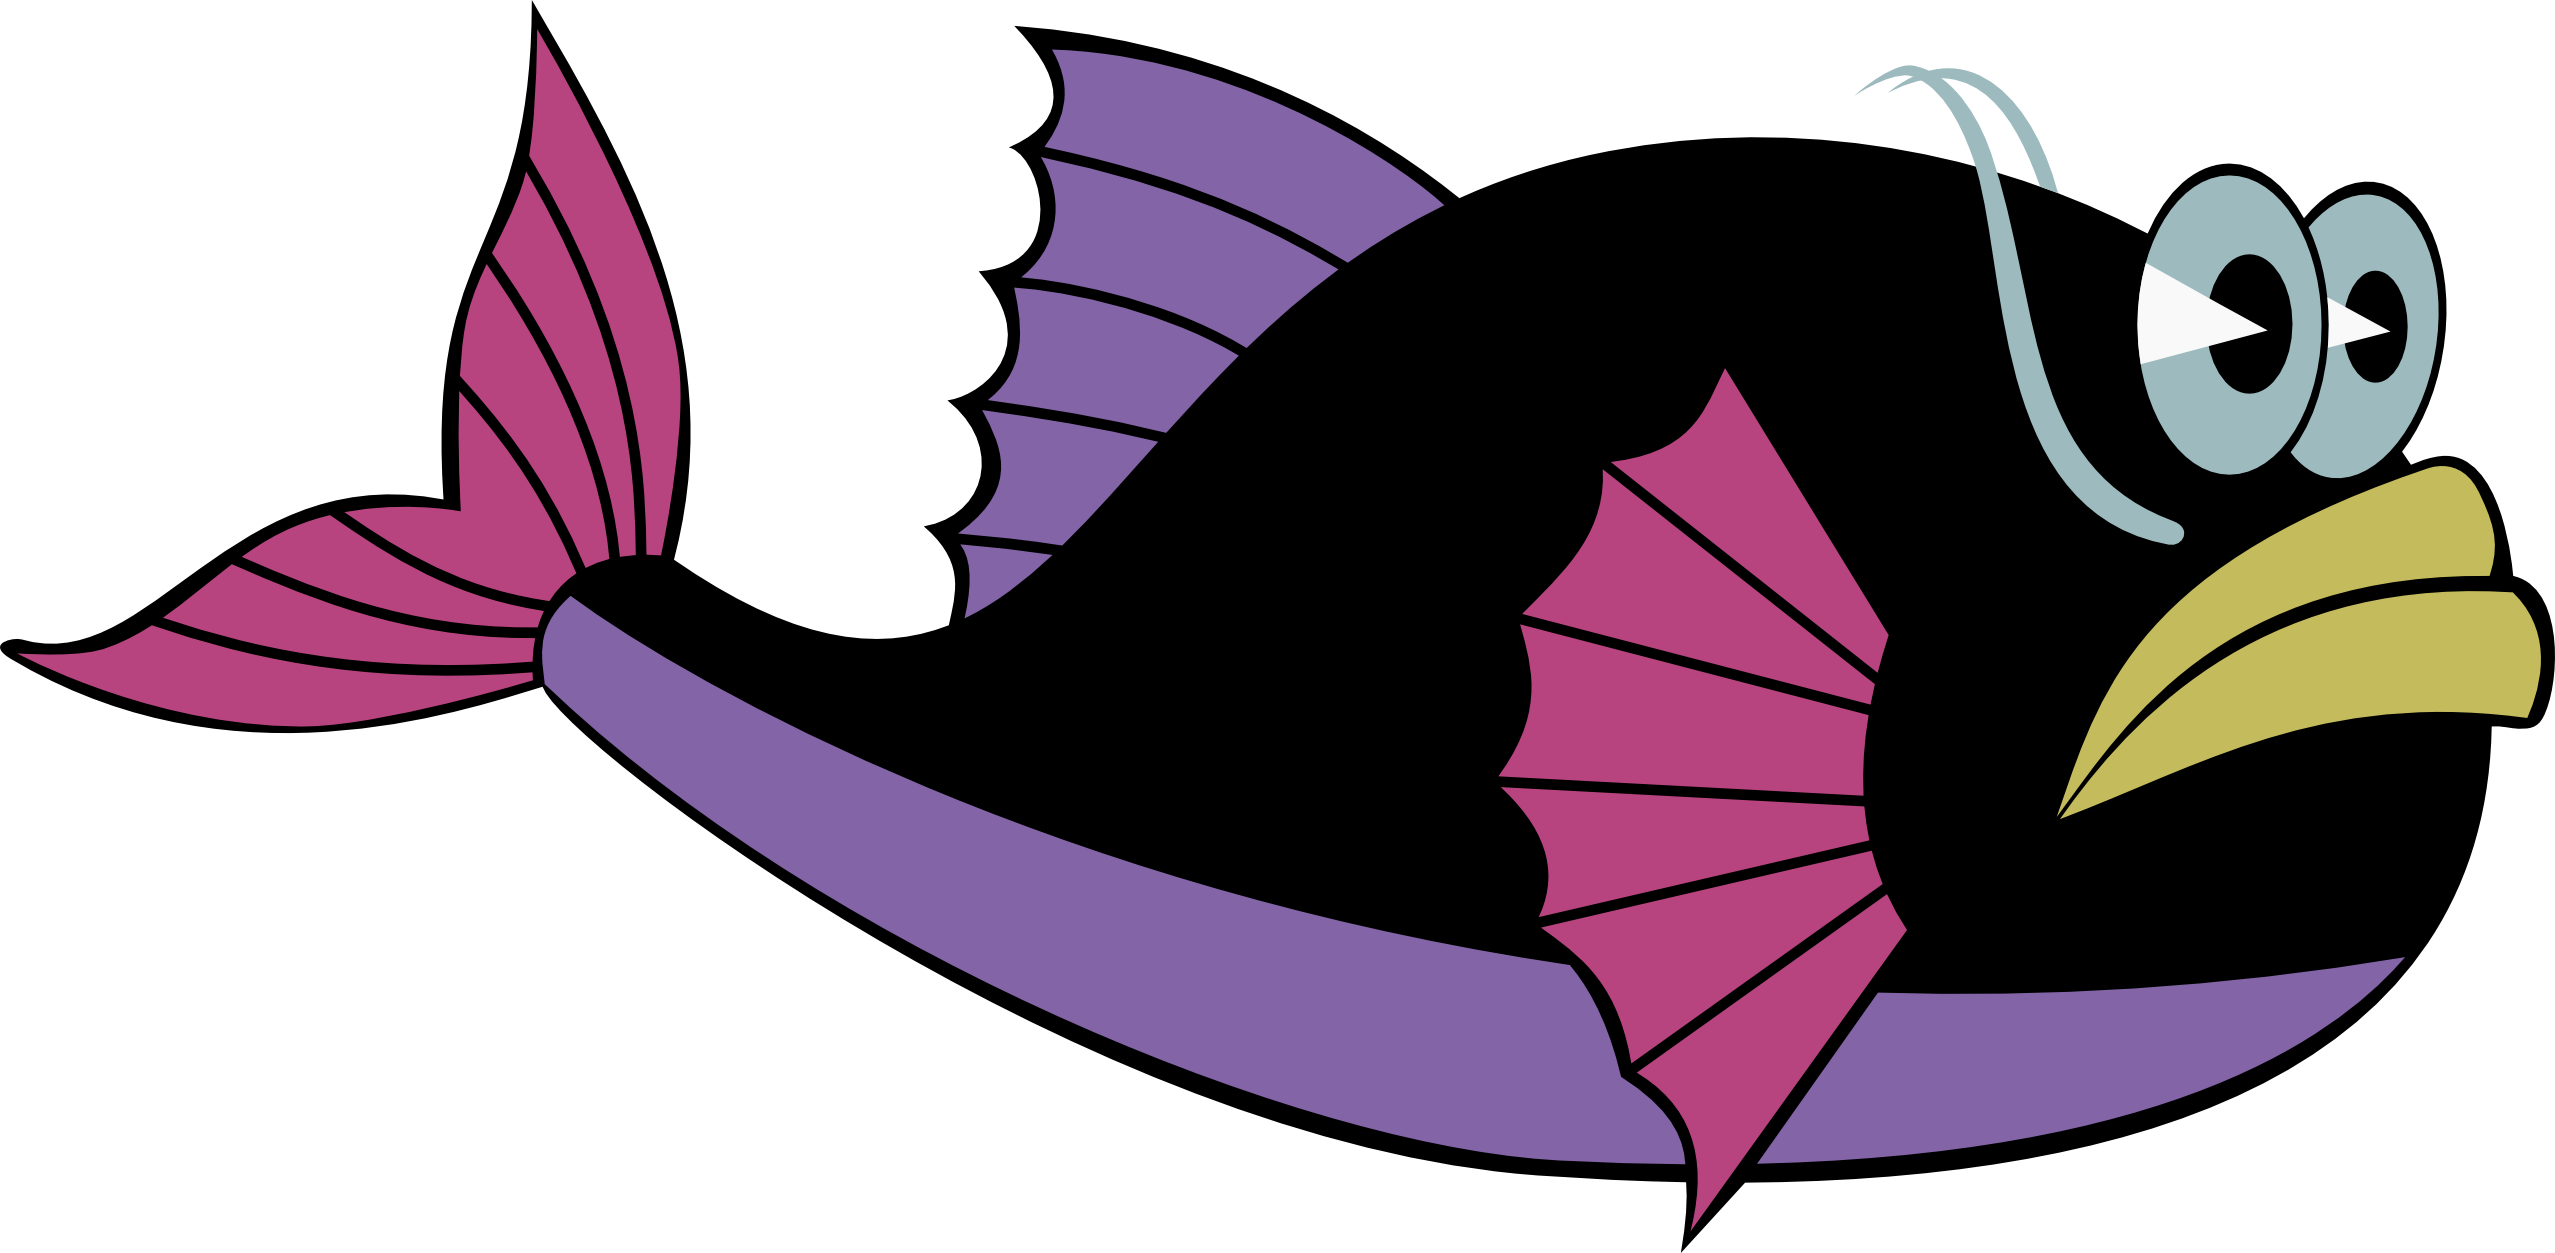 Fish Clipart - ClipArt Best